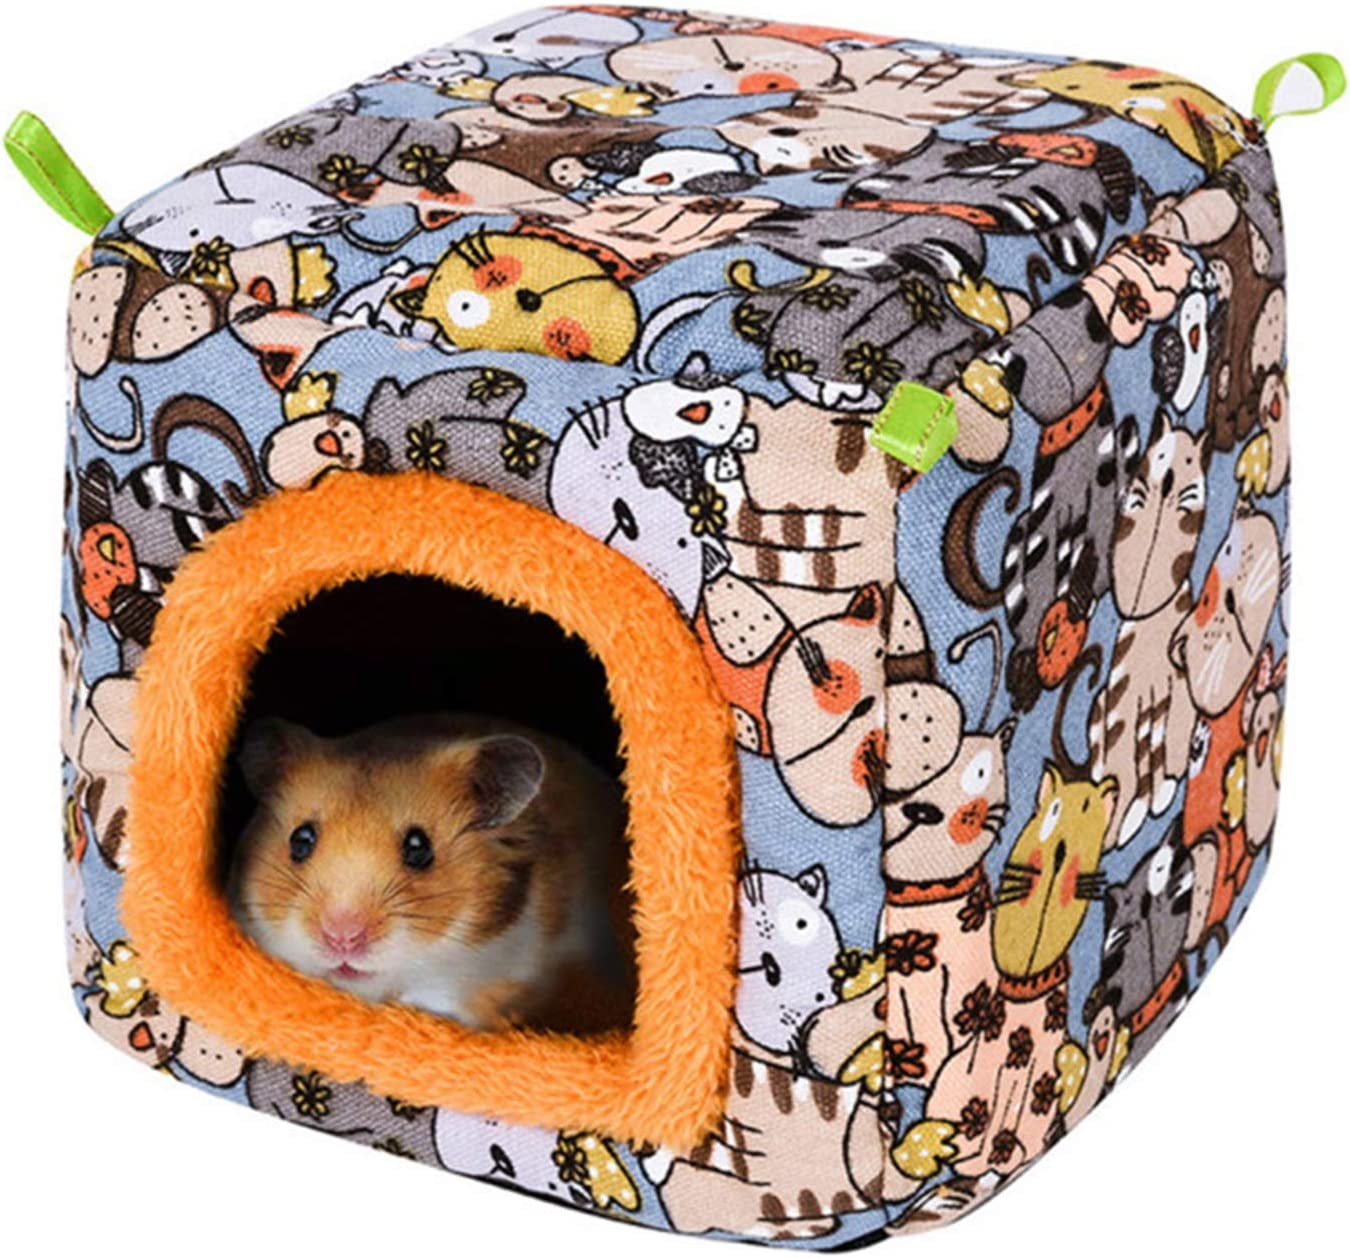 Super Soft Sleeping Bed Hanging Warm House with Hook for Hamster Hedgehog Guinea Pig Pet Supplies Tnfeeon Small Pet Plush Hammock